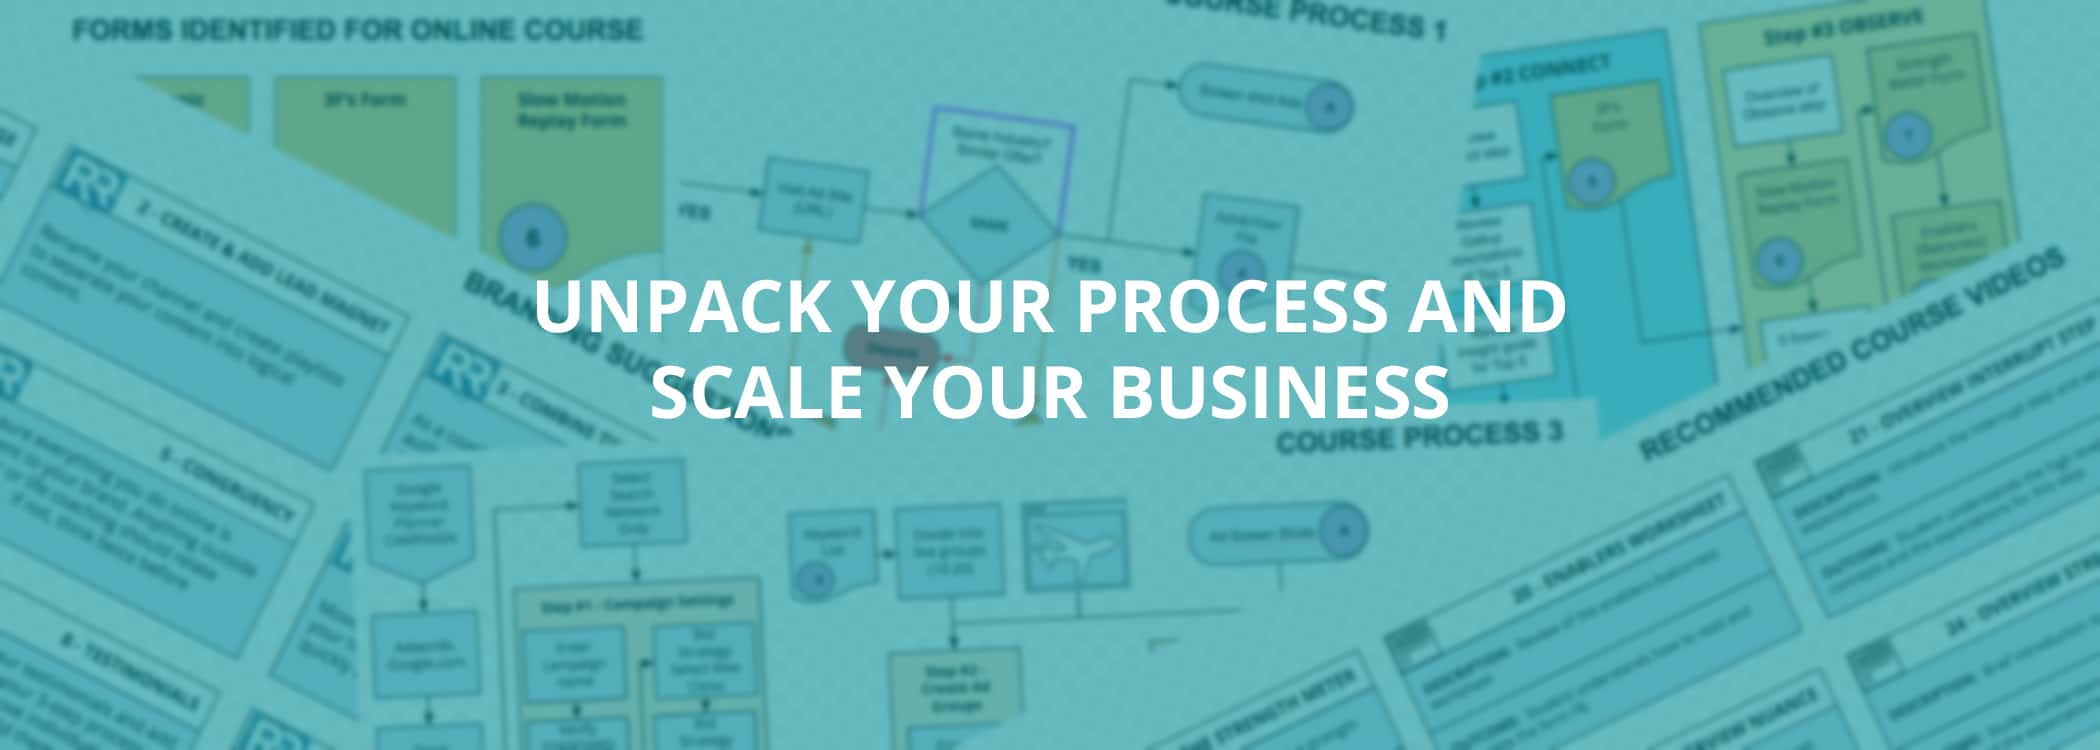 unpack-your-process-and-scale-your-business